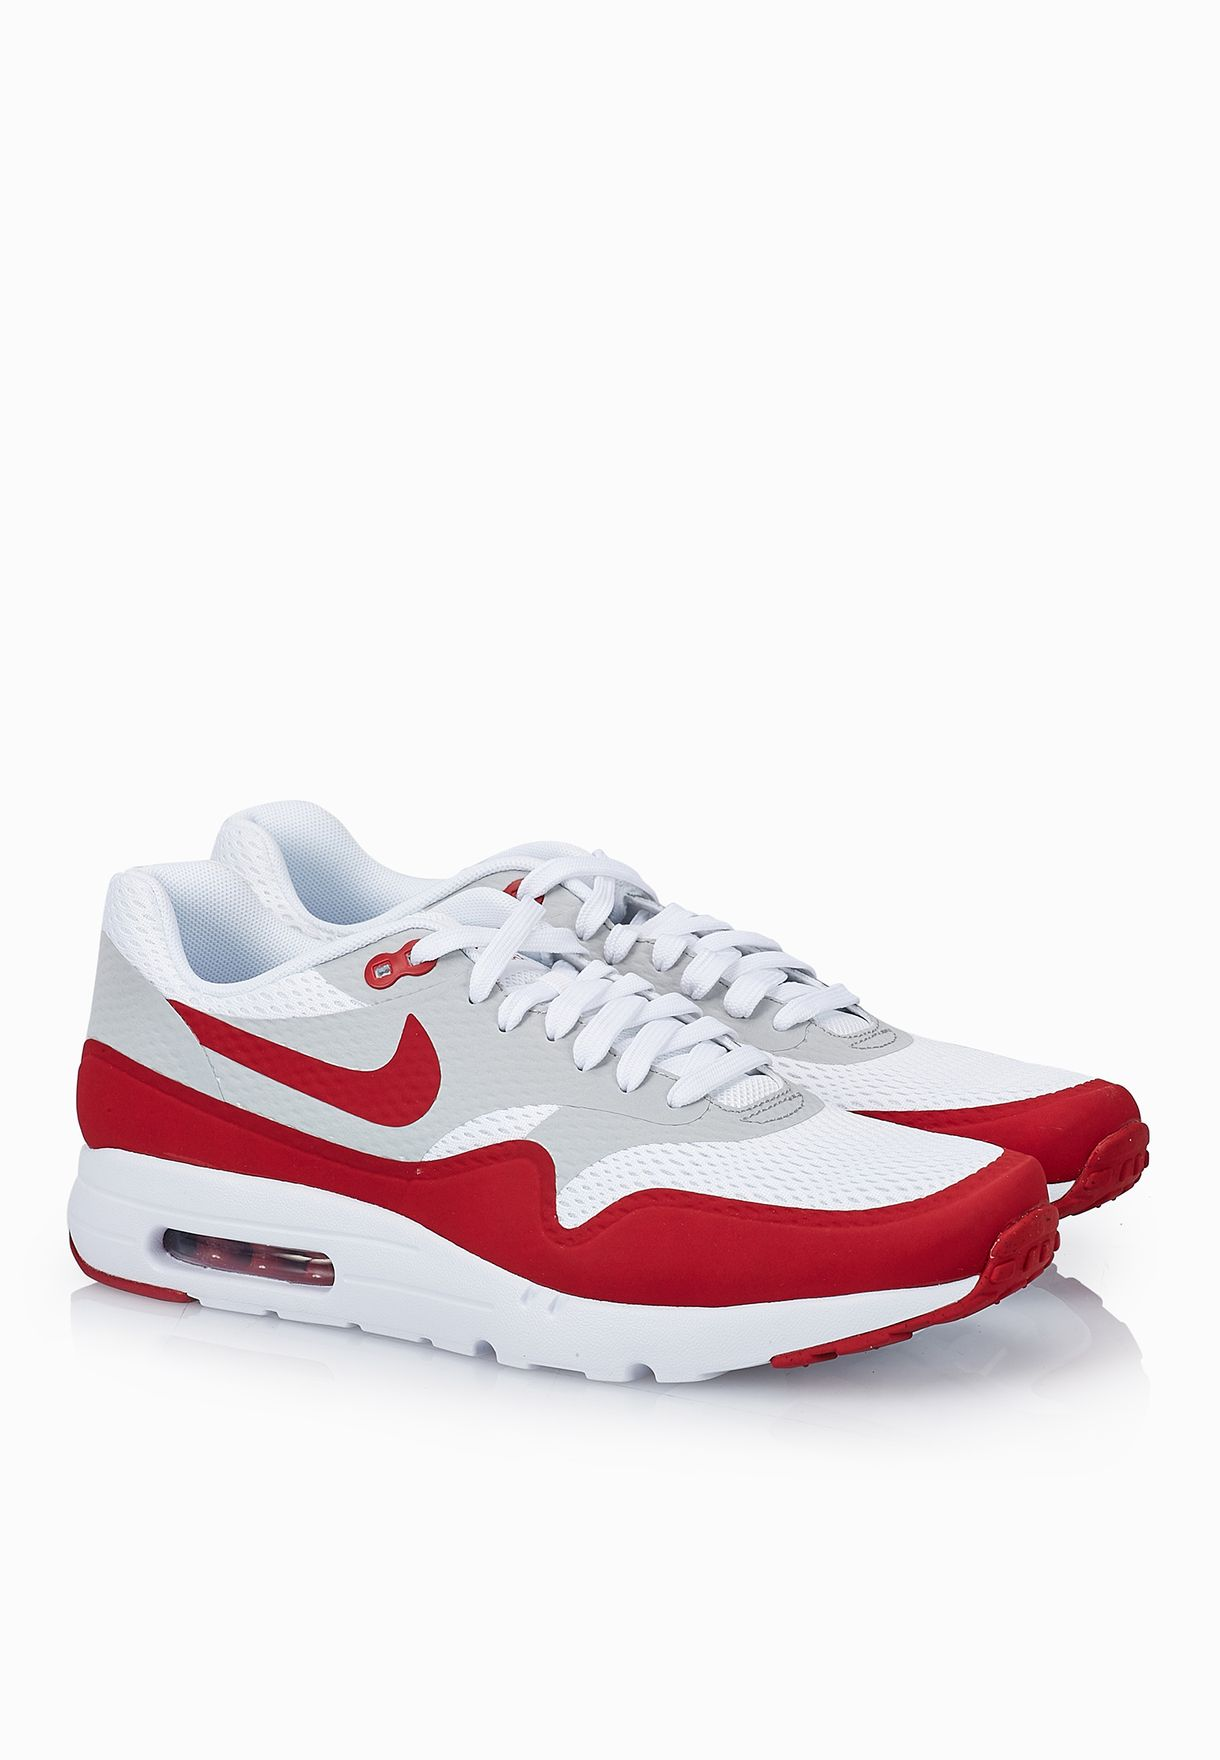 uk availability ad795 a59c2 Air Max 1 Ultra Essential